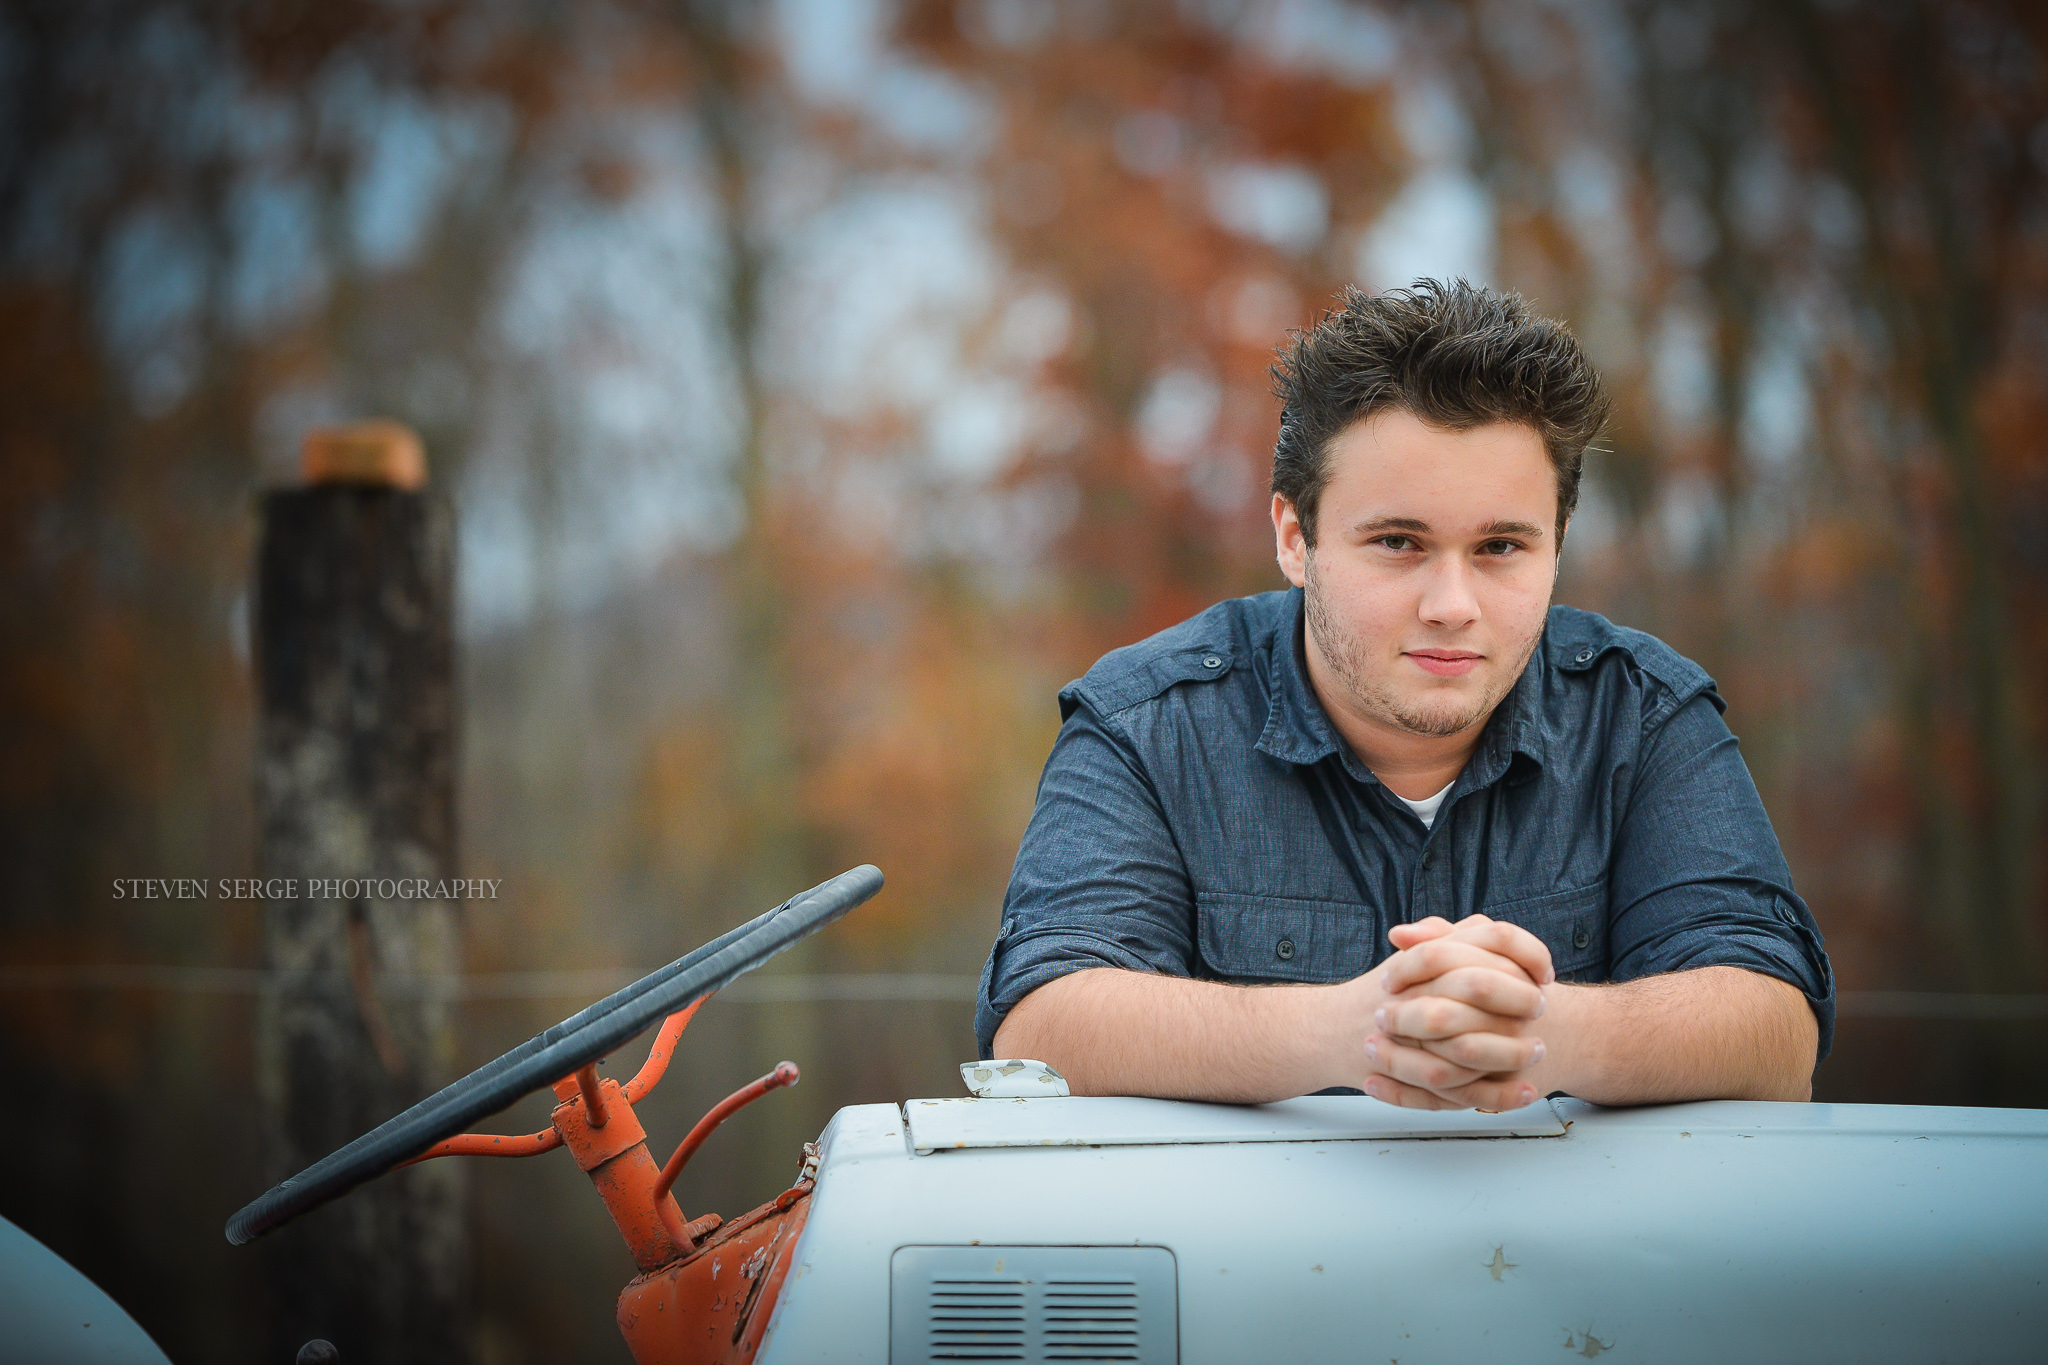 scranton-clarks-summit-nepa-senior-portrait-photographer-2.jpg